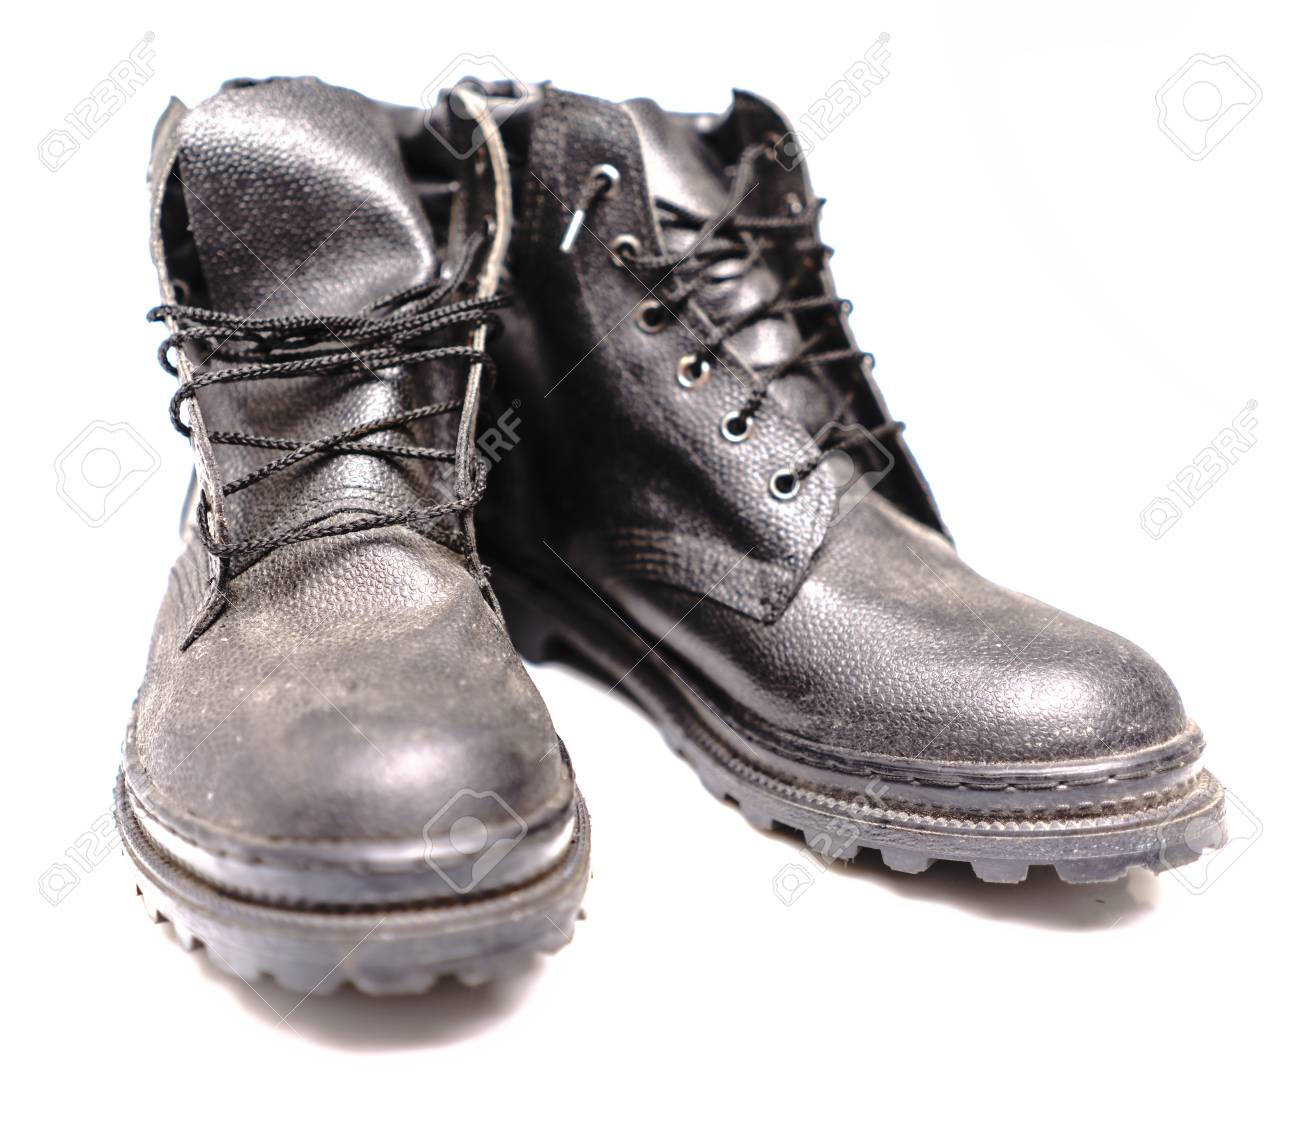 c6ced5a803b Black Safety Shoe on White Background, Safety Shoes for Workers..